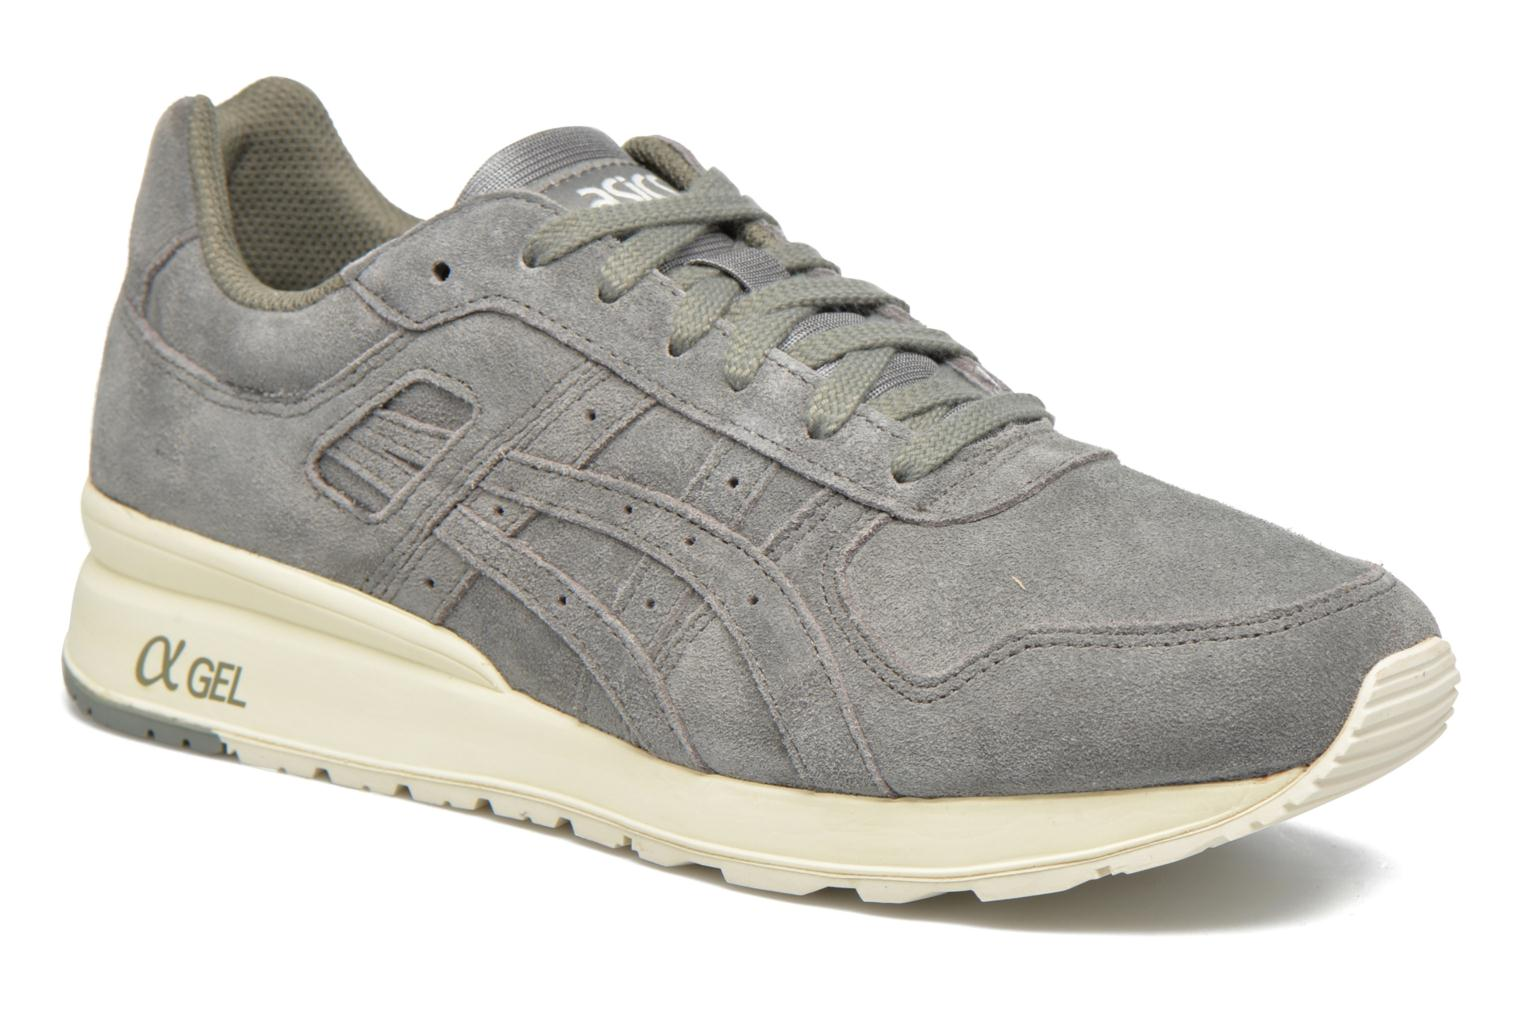 Gt-ii Taupe Grey/Taupe Grey